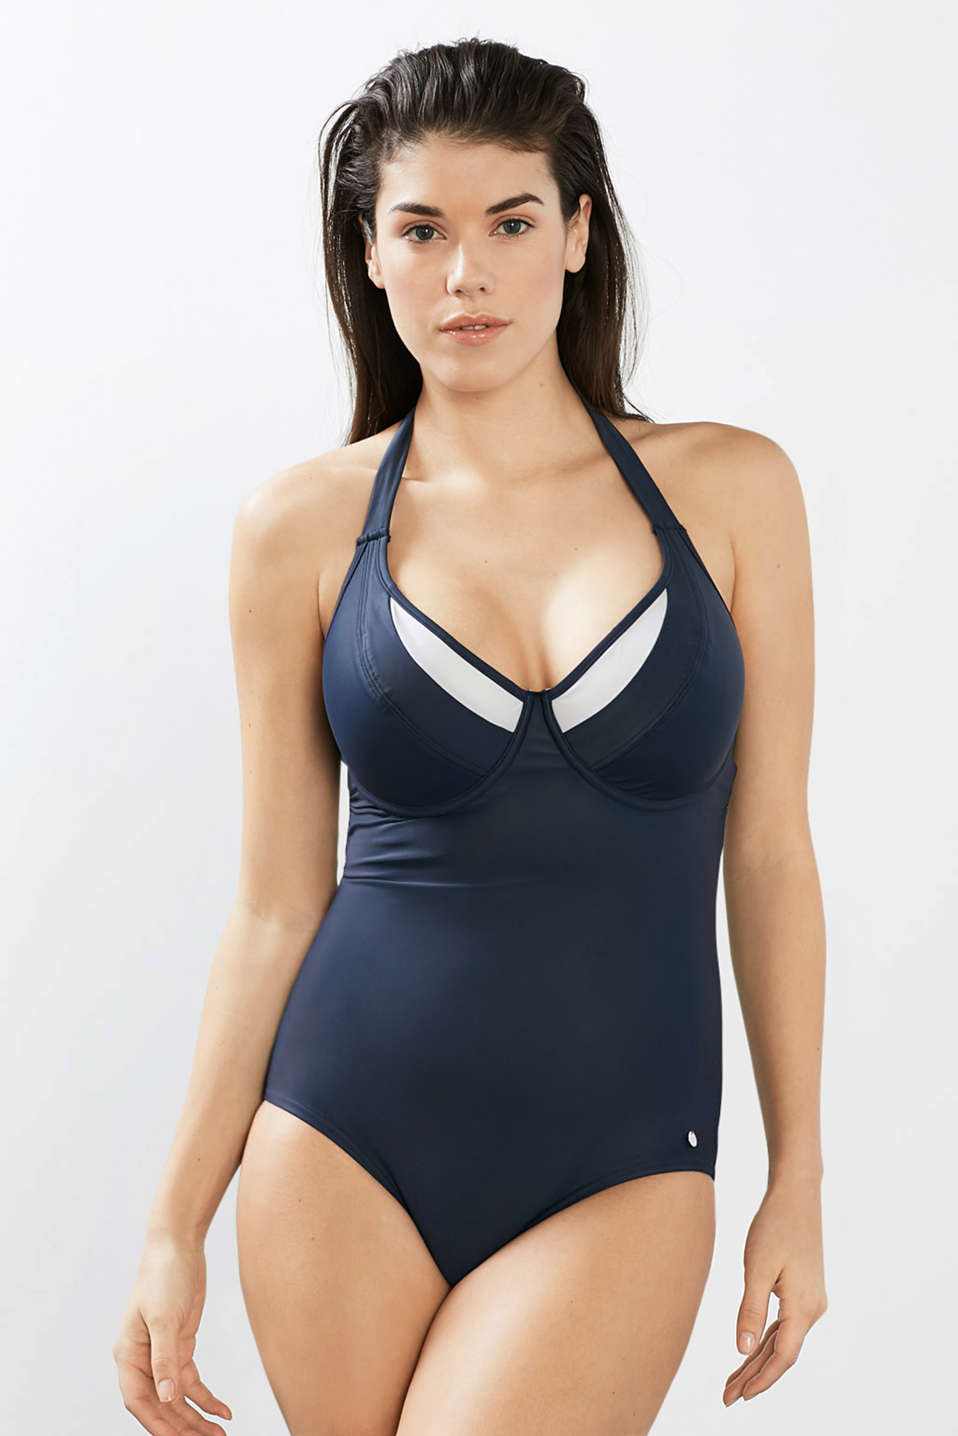 Padded swimsuit for large cup sizes